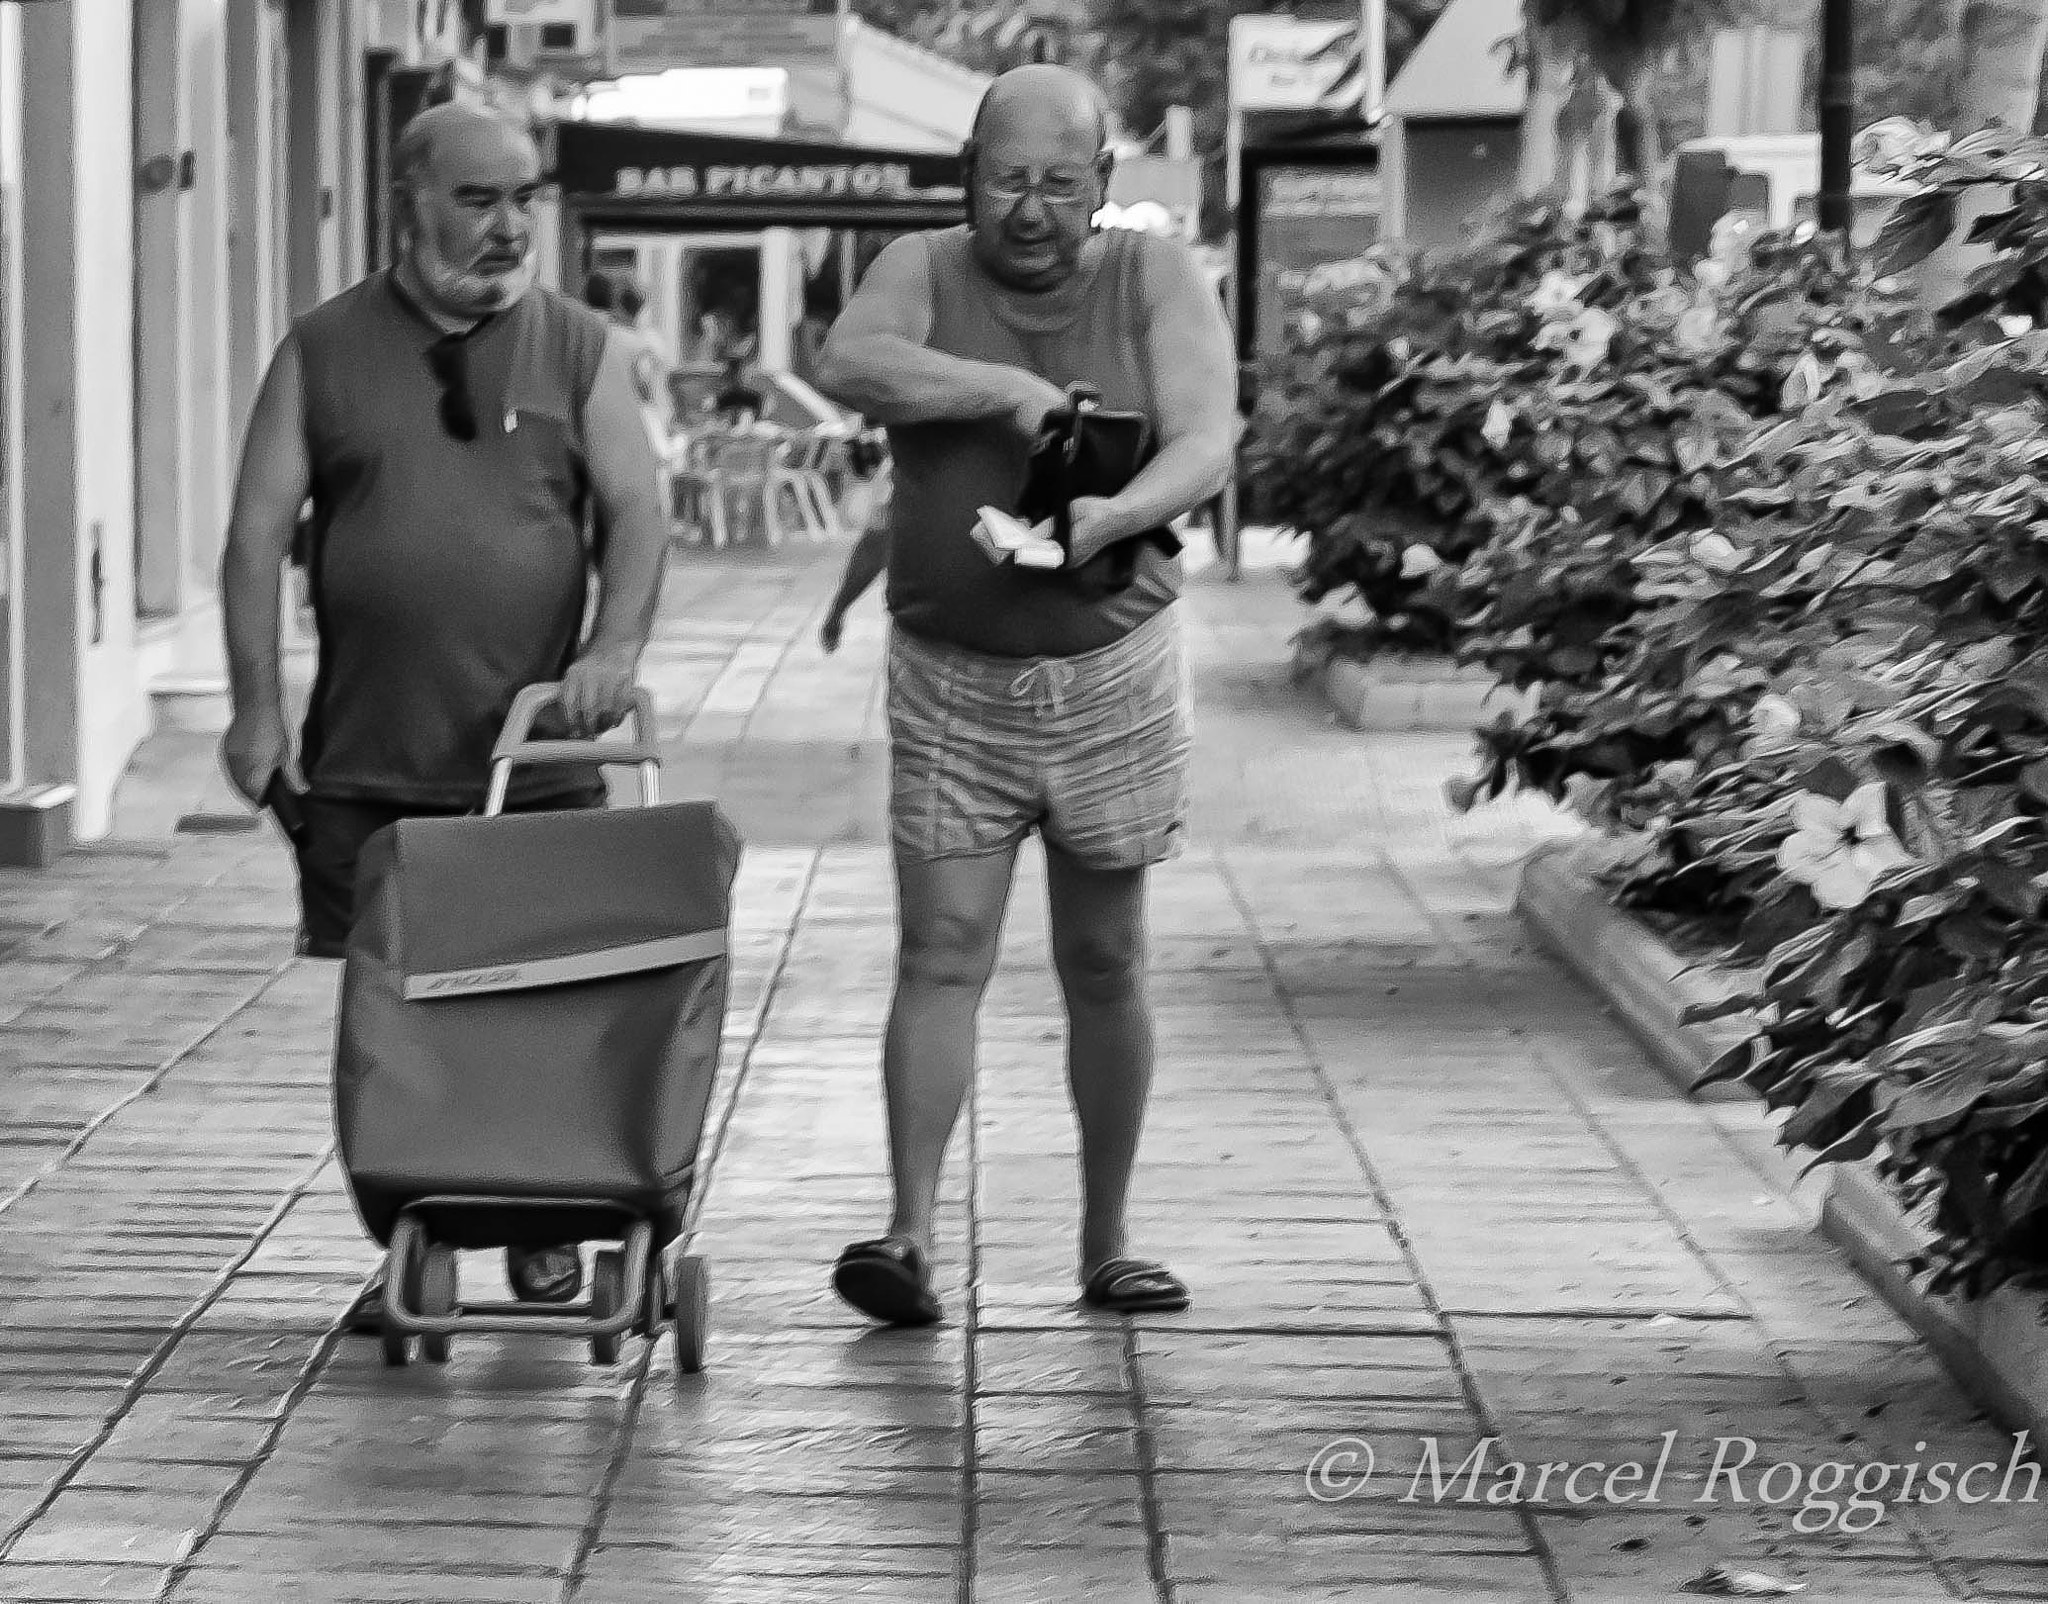 Photograph Two Men and a Trolly by Marcel  Roggisch on 500px